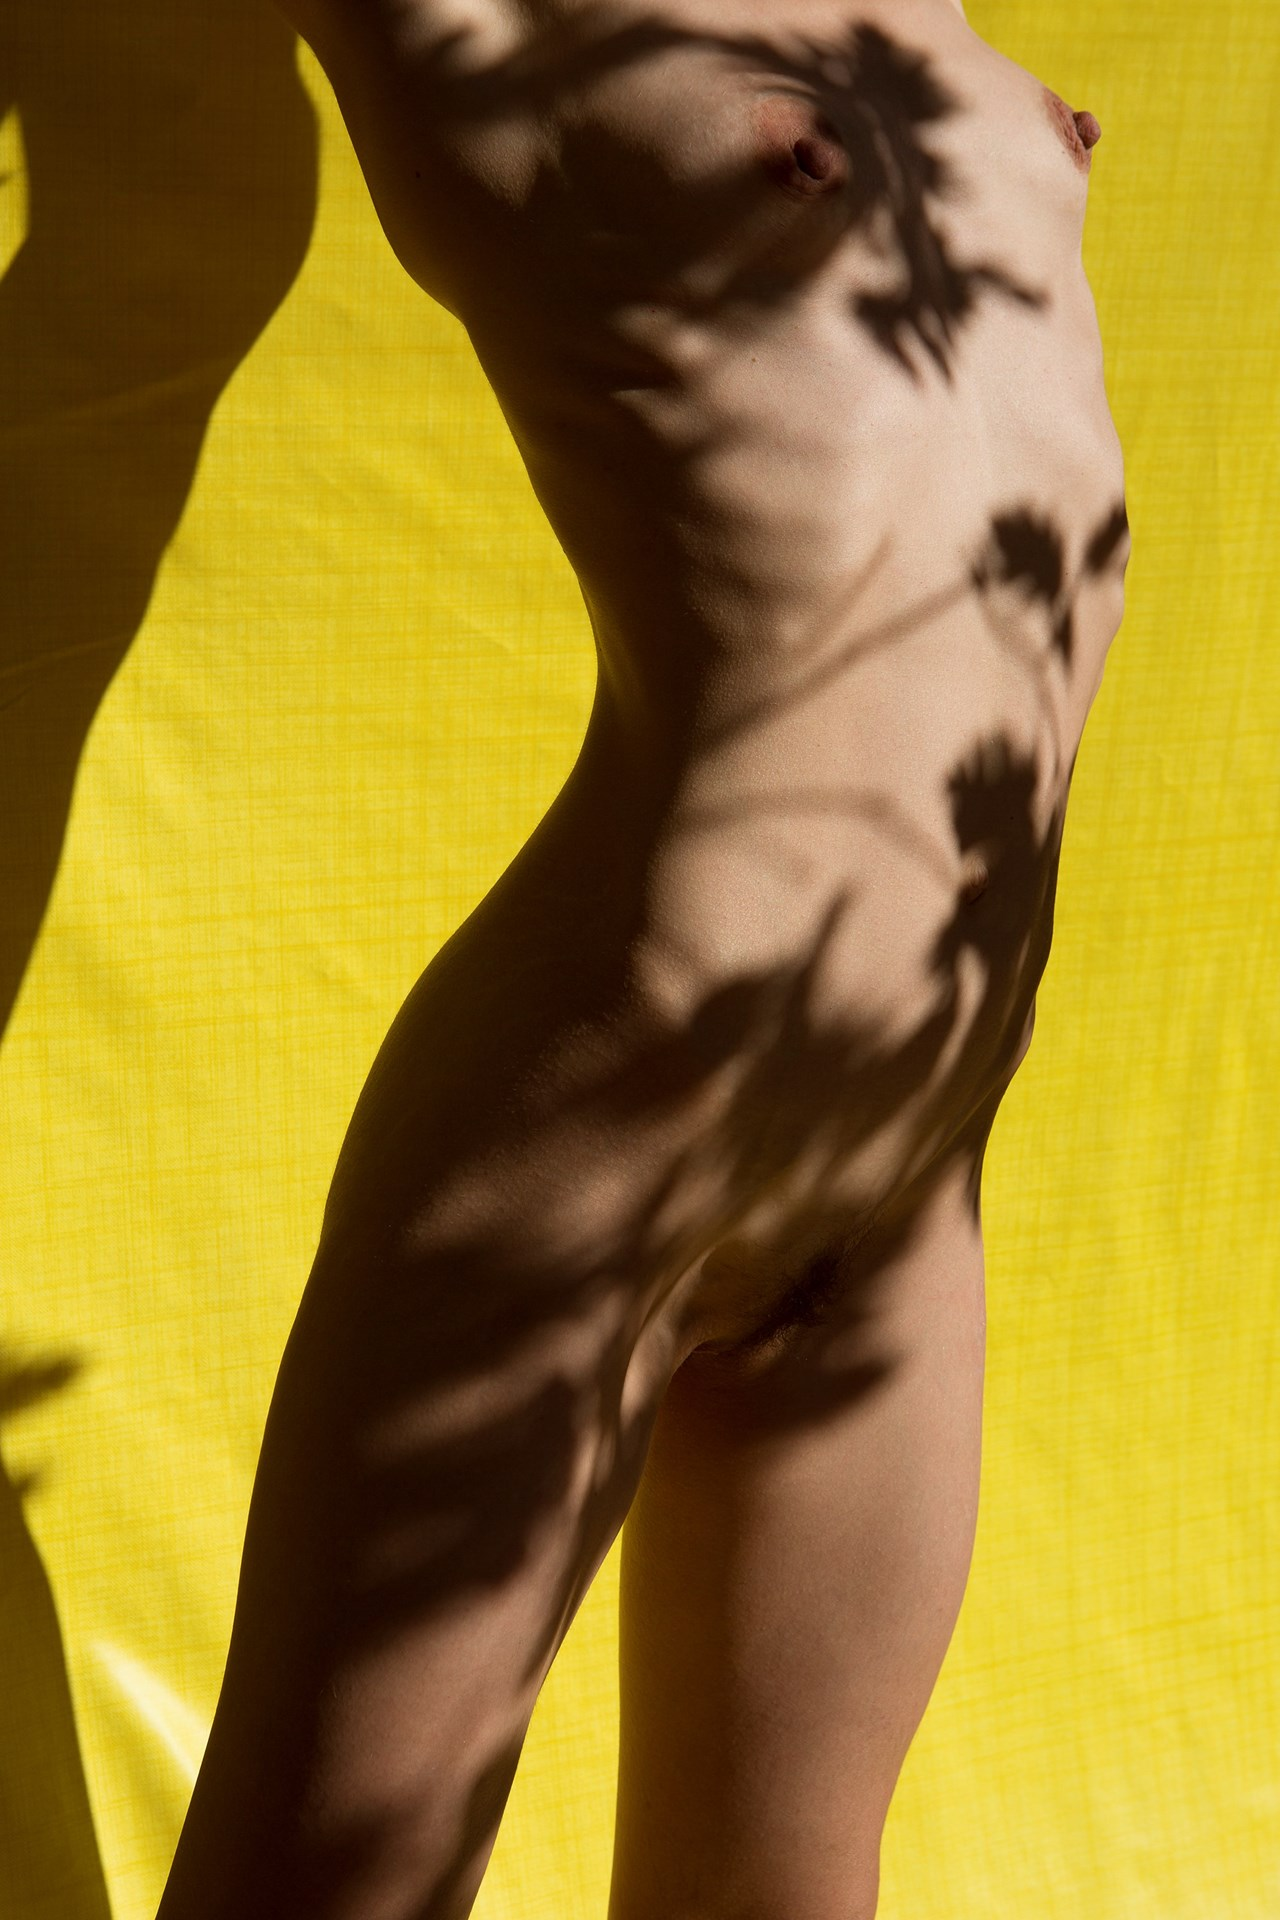 Roxane-Viviane_Sassen-AnOther-Mag-04.jpg